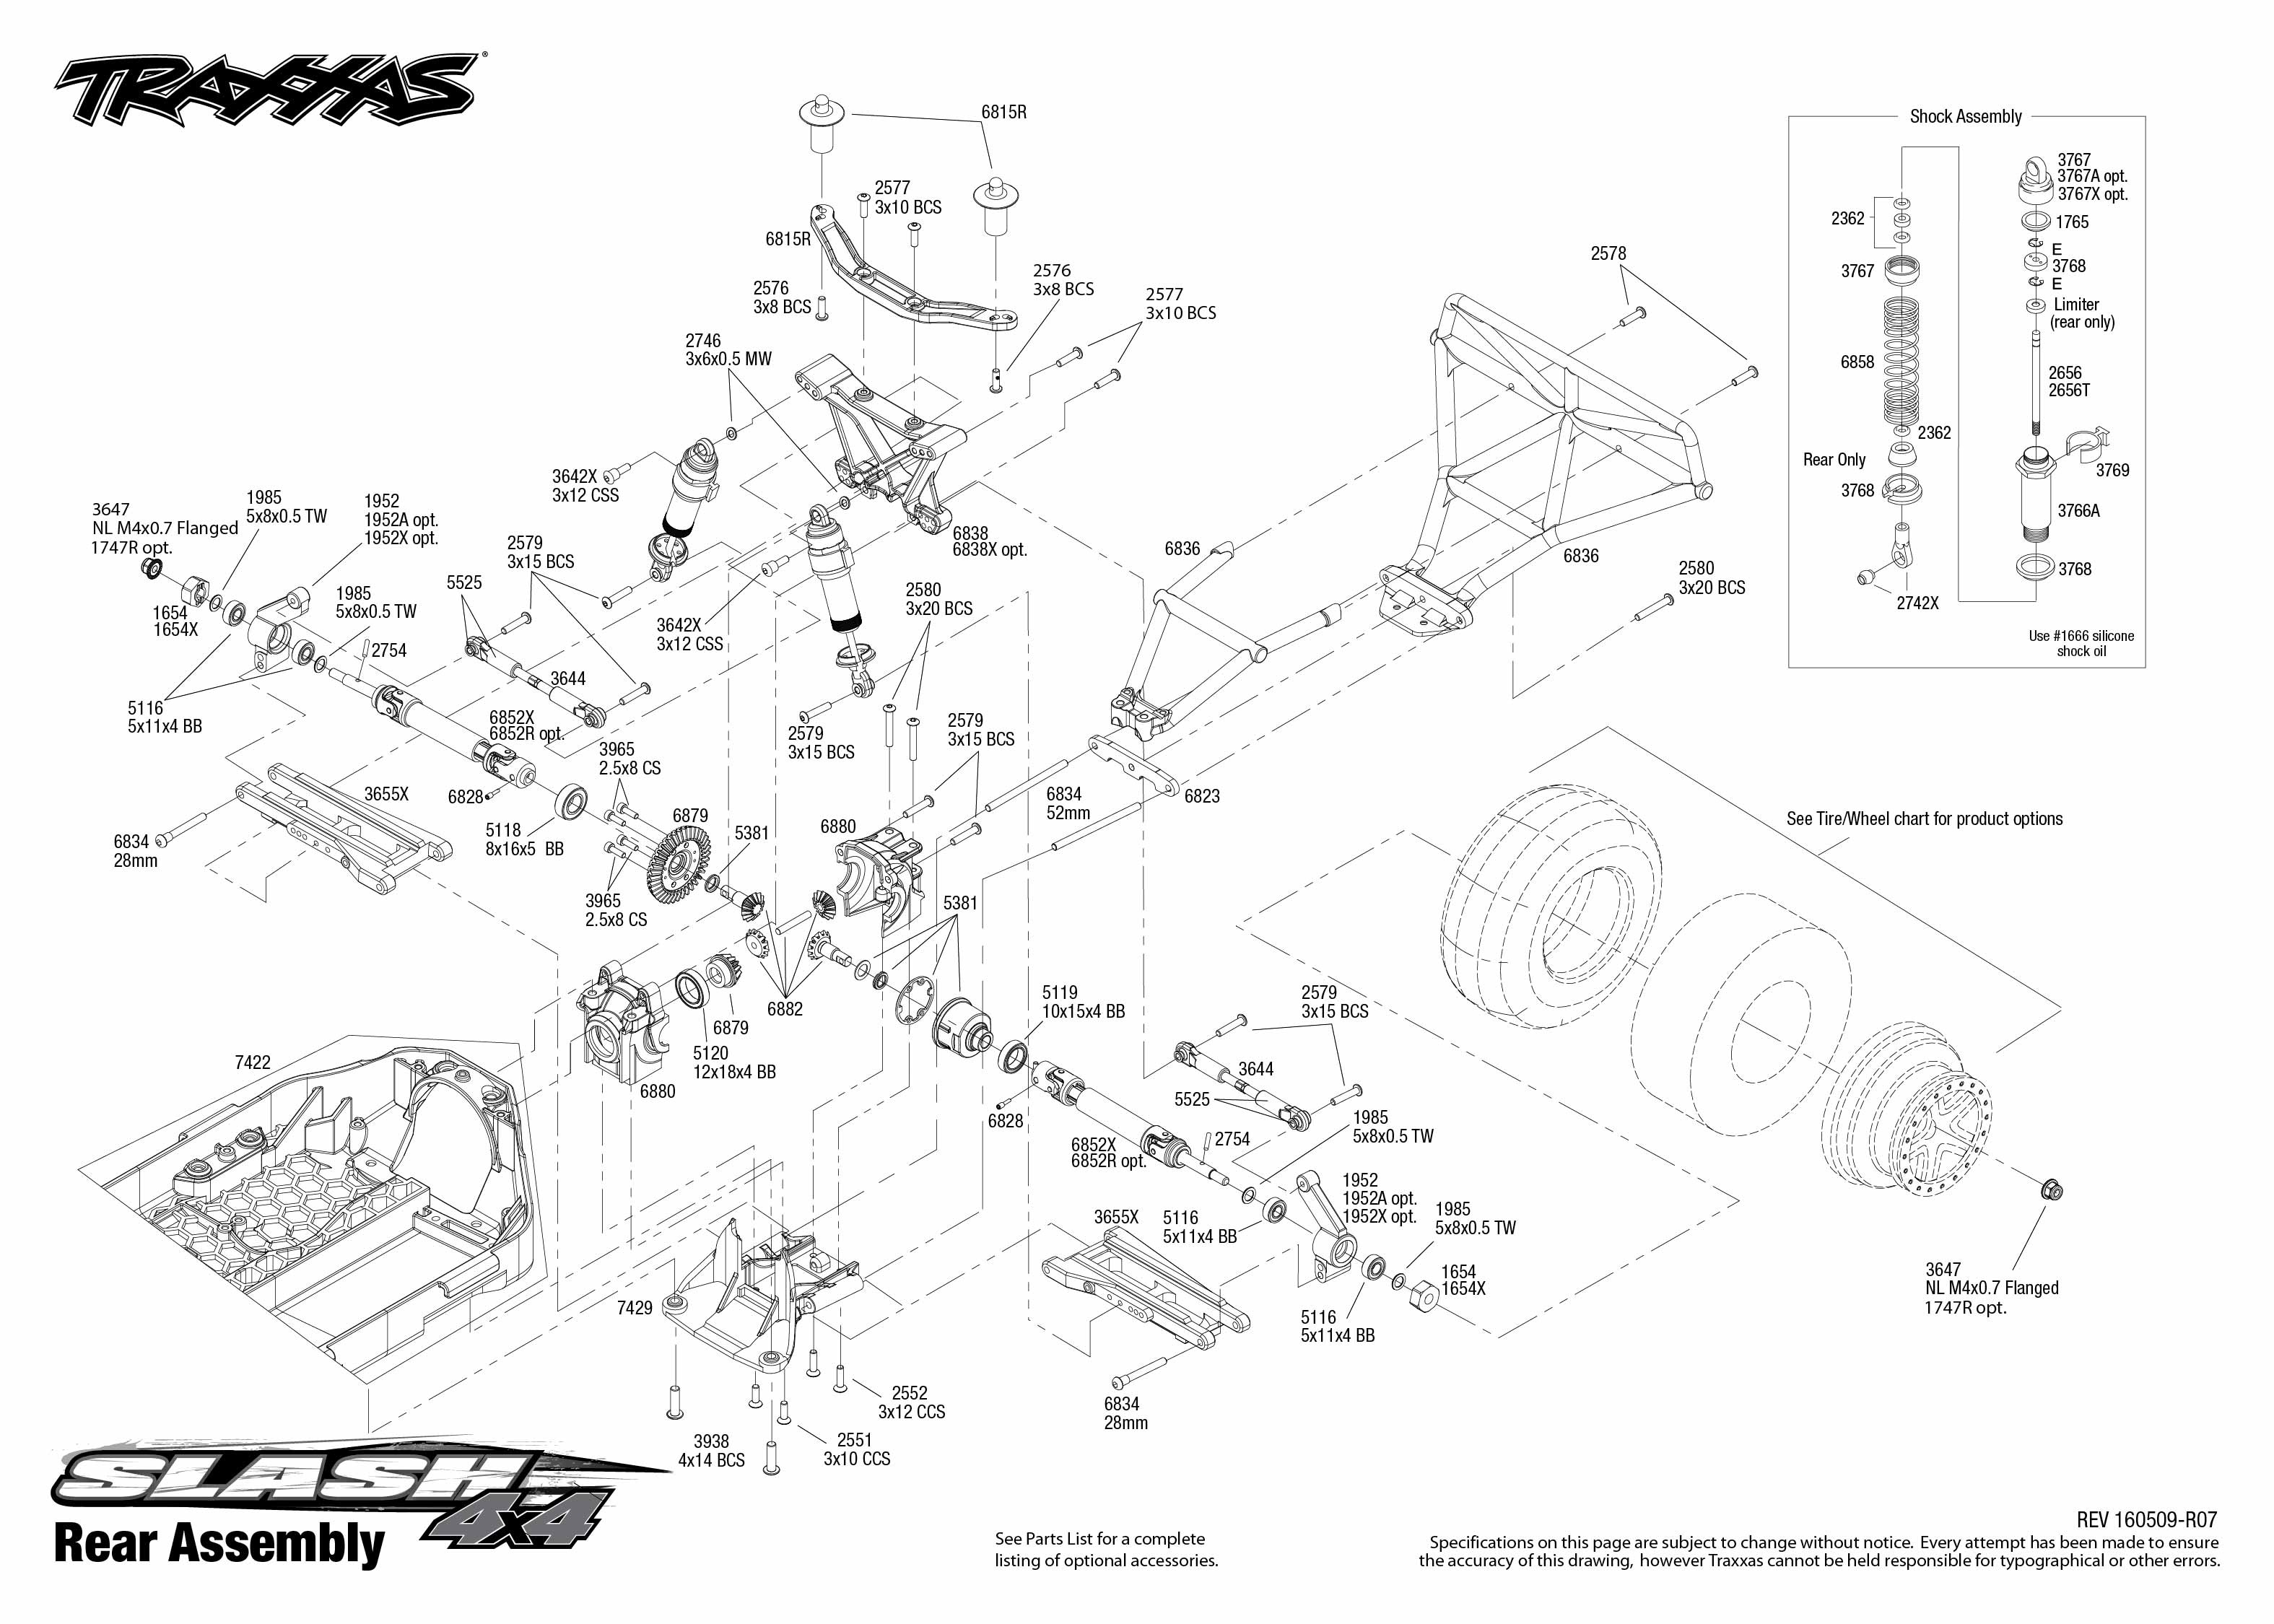 Traxxas Esc Wiring Diagram 4x4 - Wiring Diagram Box on futaba receivers 2 4ghz, futaba 617 receiver, futaba r607fs receiver, futaba receiver compatibility, futaba receiver wiring,